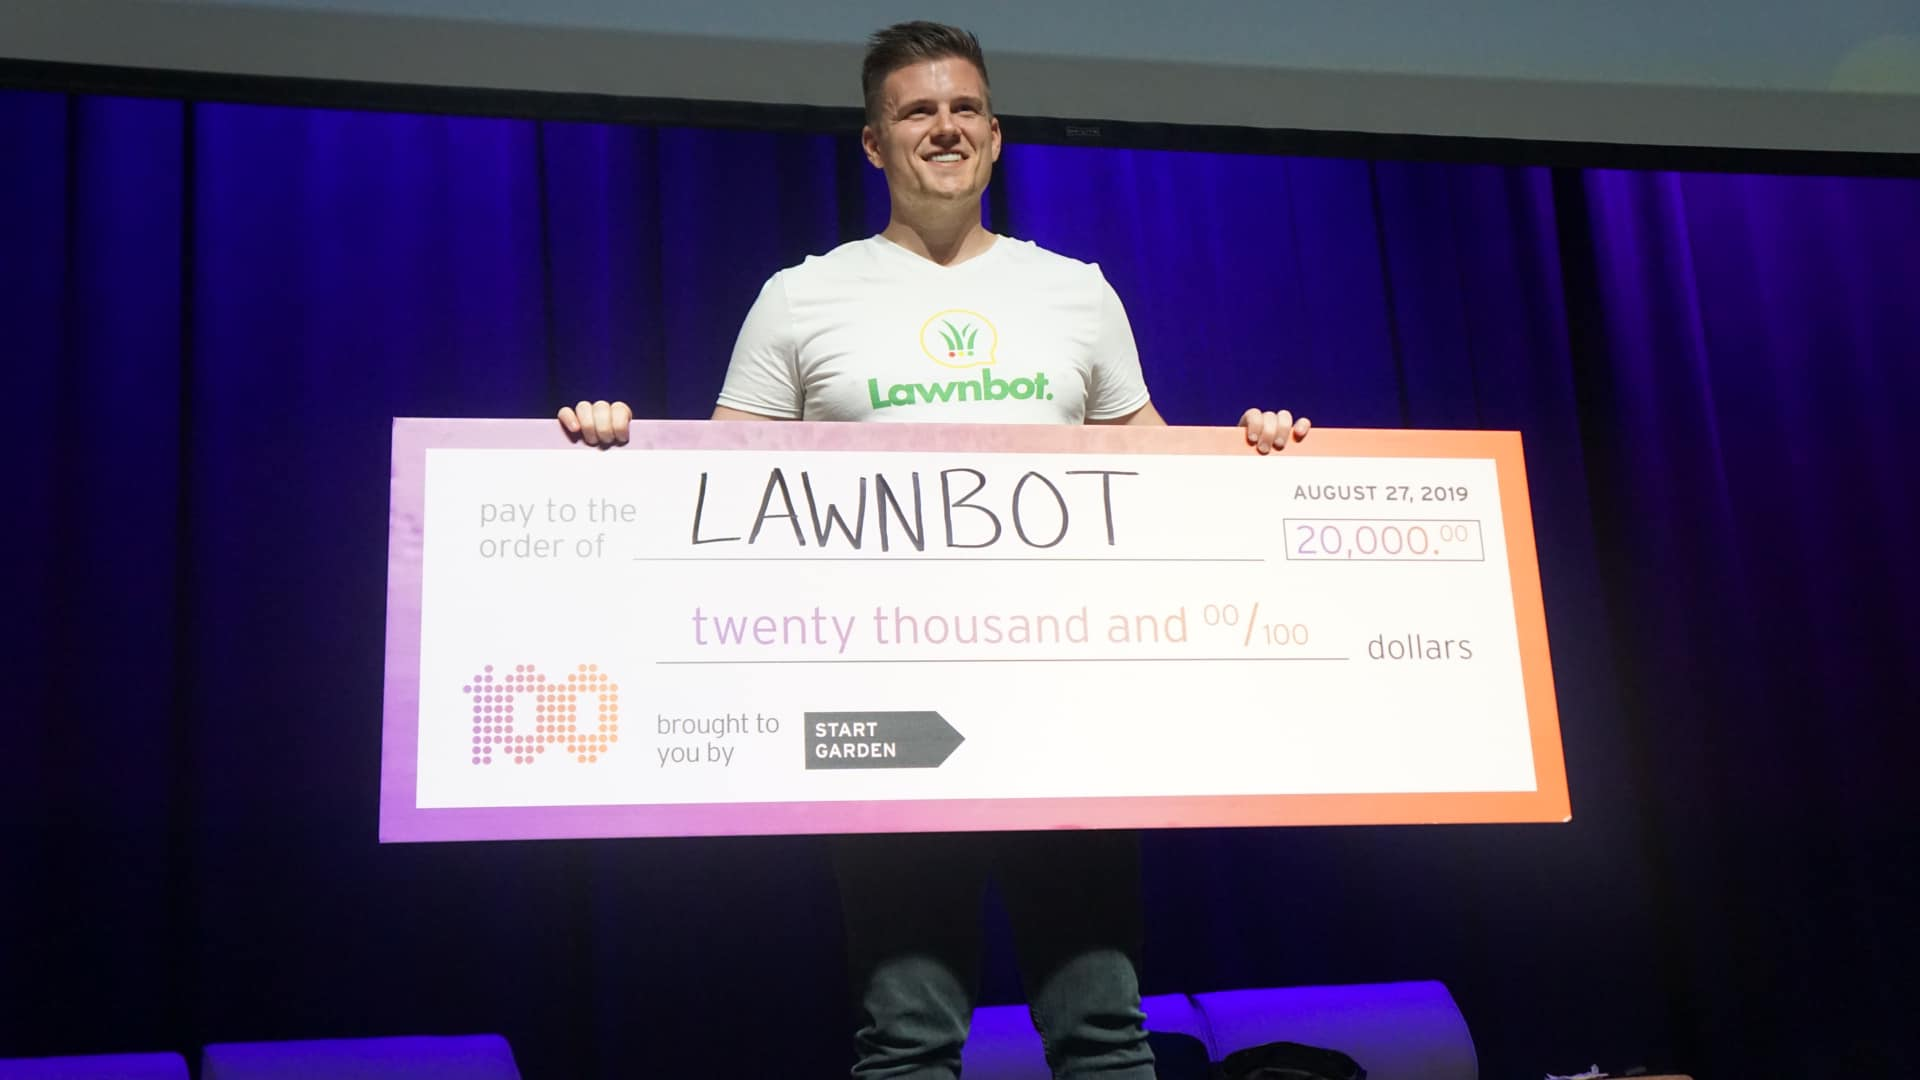 Lawnbot.biz Wins $20,000 In Start Garden 100 ideas Demo Day